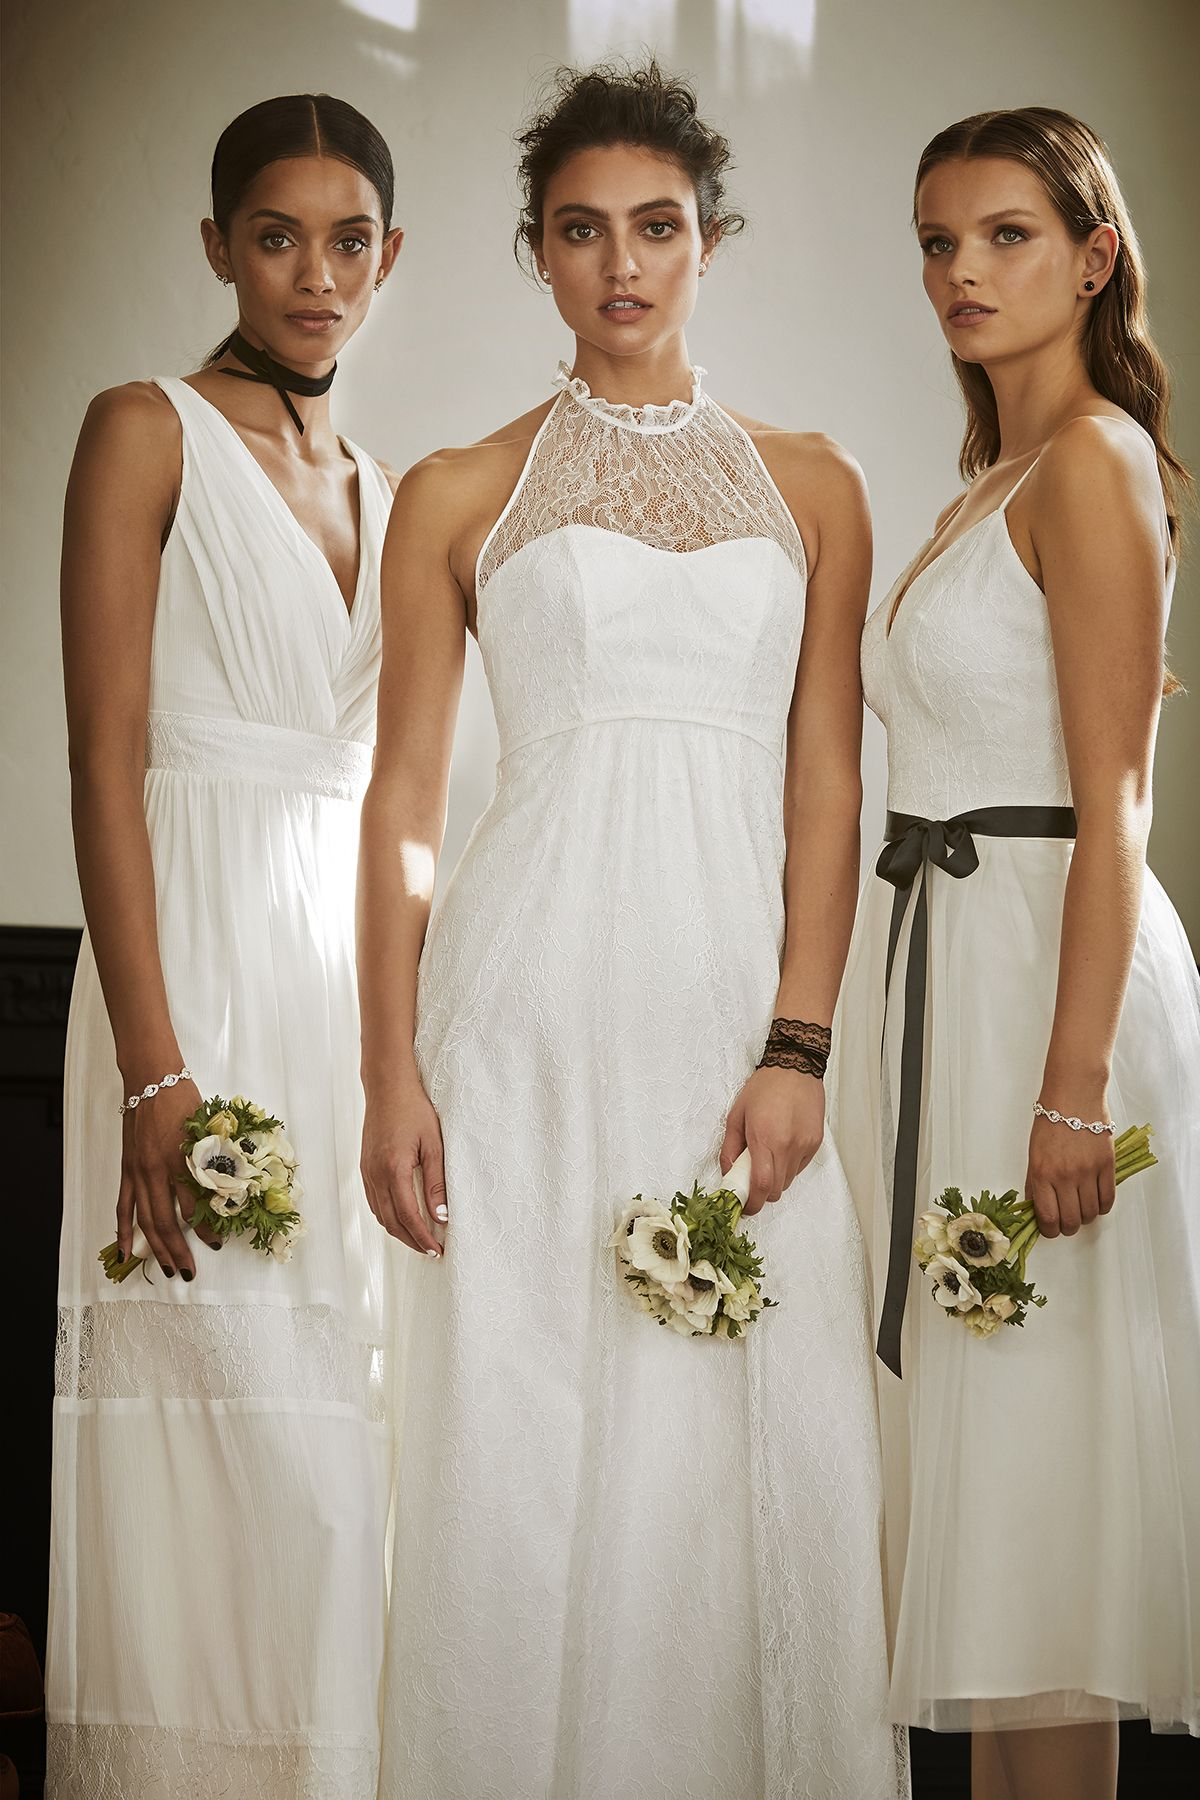 The All-White Bridal Party: In Favor of White Bridesmaid Dresses ...